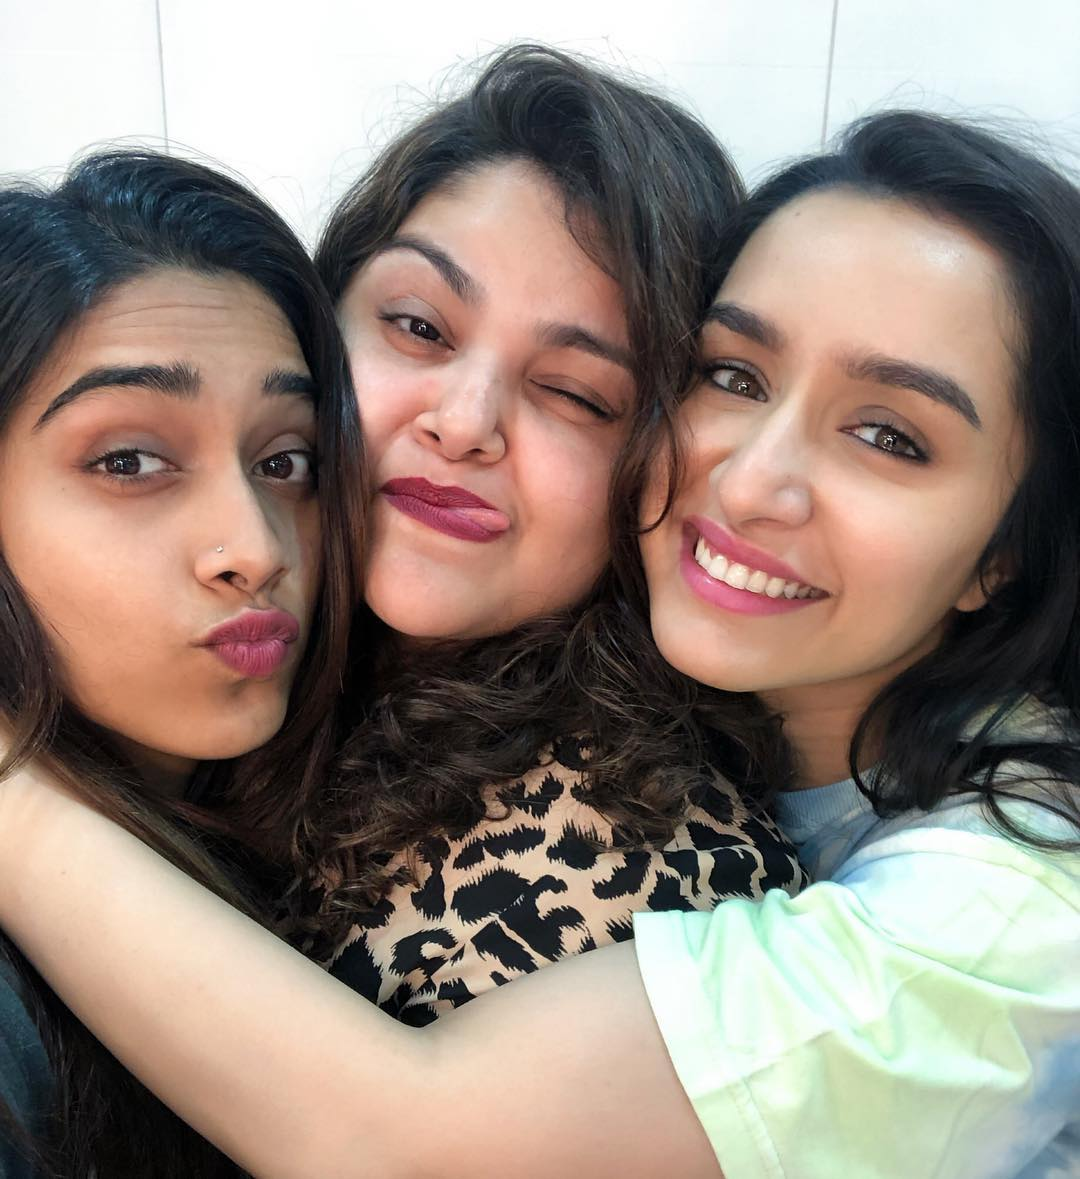 Last shooting day of the year! #Saaho  @ShraddhaKapoor @shraddhanaik26 #NikitaMenon 🥰✨💞